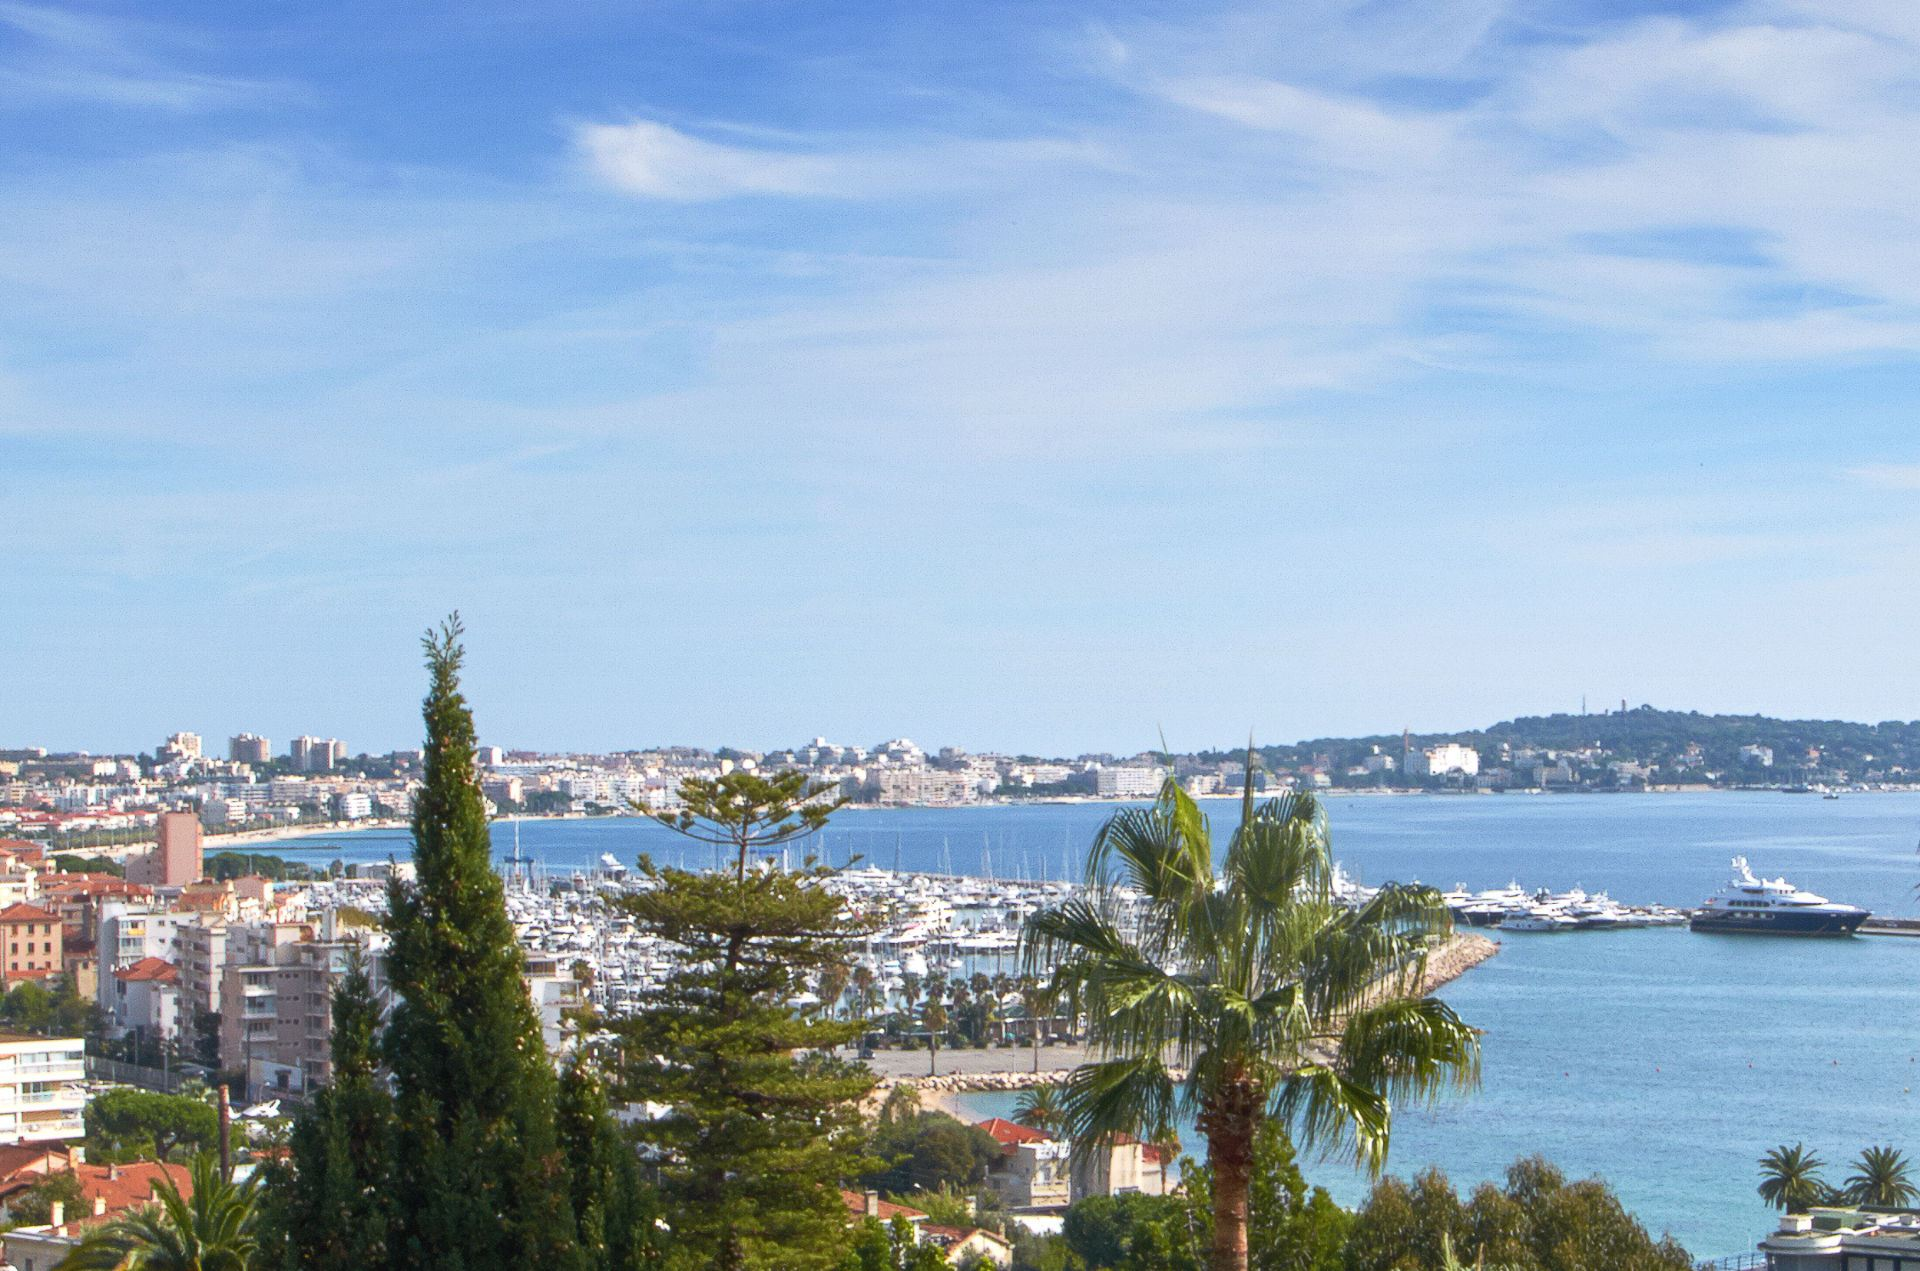 Apartamento para Venda às Sole agent - Lovely villa with beautiful sea views over Cannes & Golf Juan Cannes, Provença-Alpes-Costa Azul, 06400 França